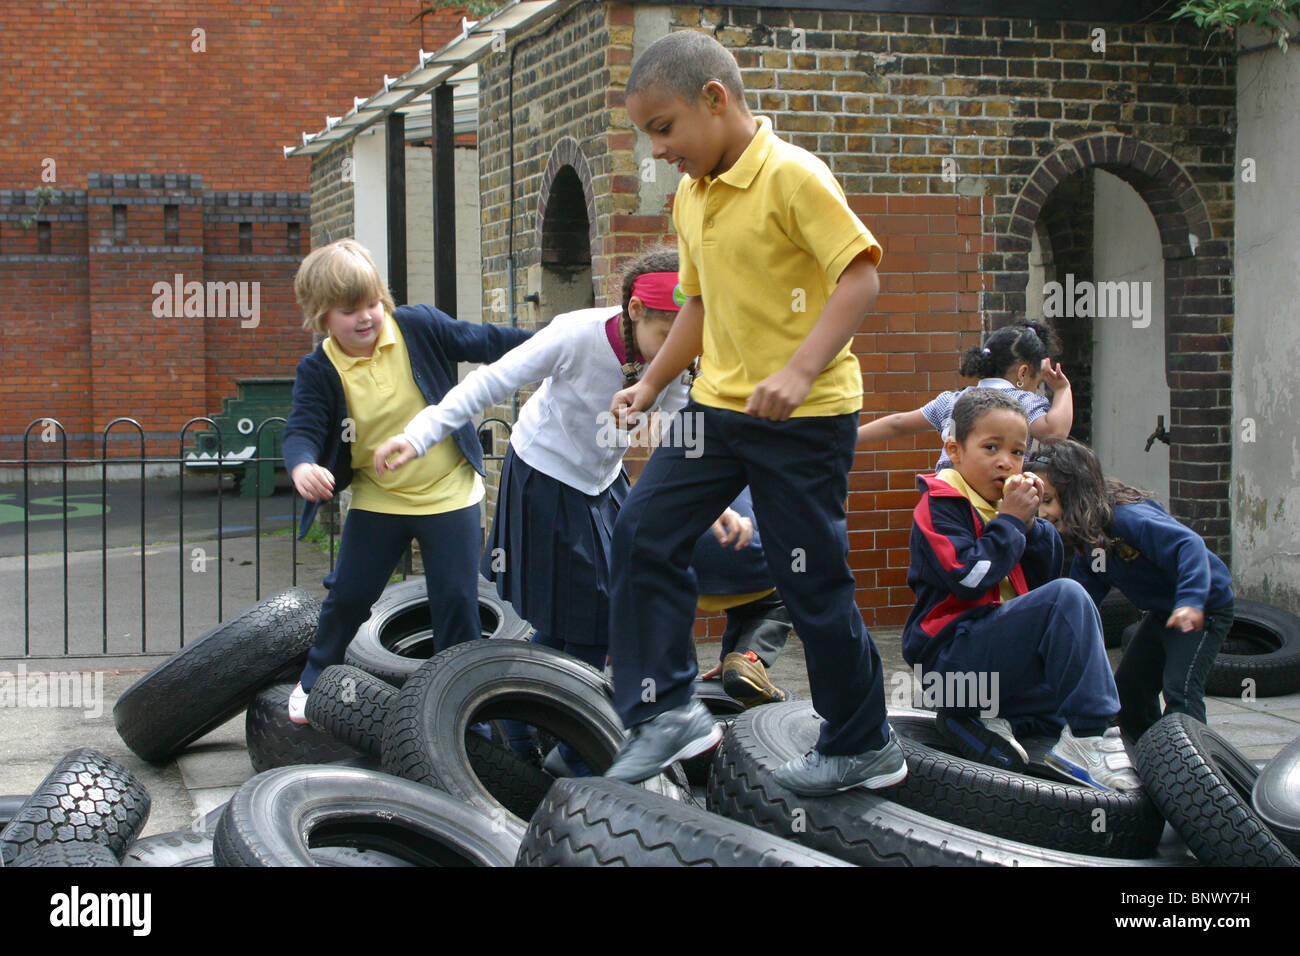 primary school children playing on old tires in the school playground - Stock Image